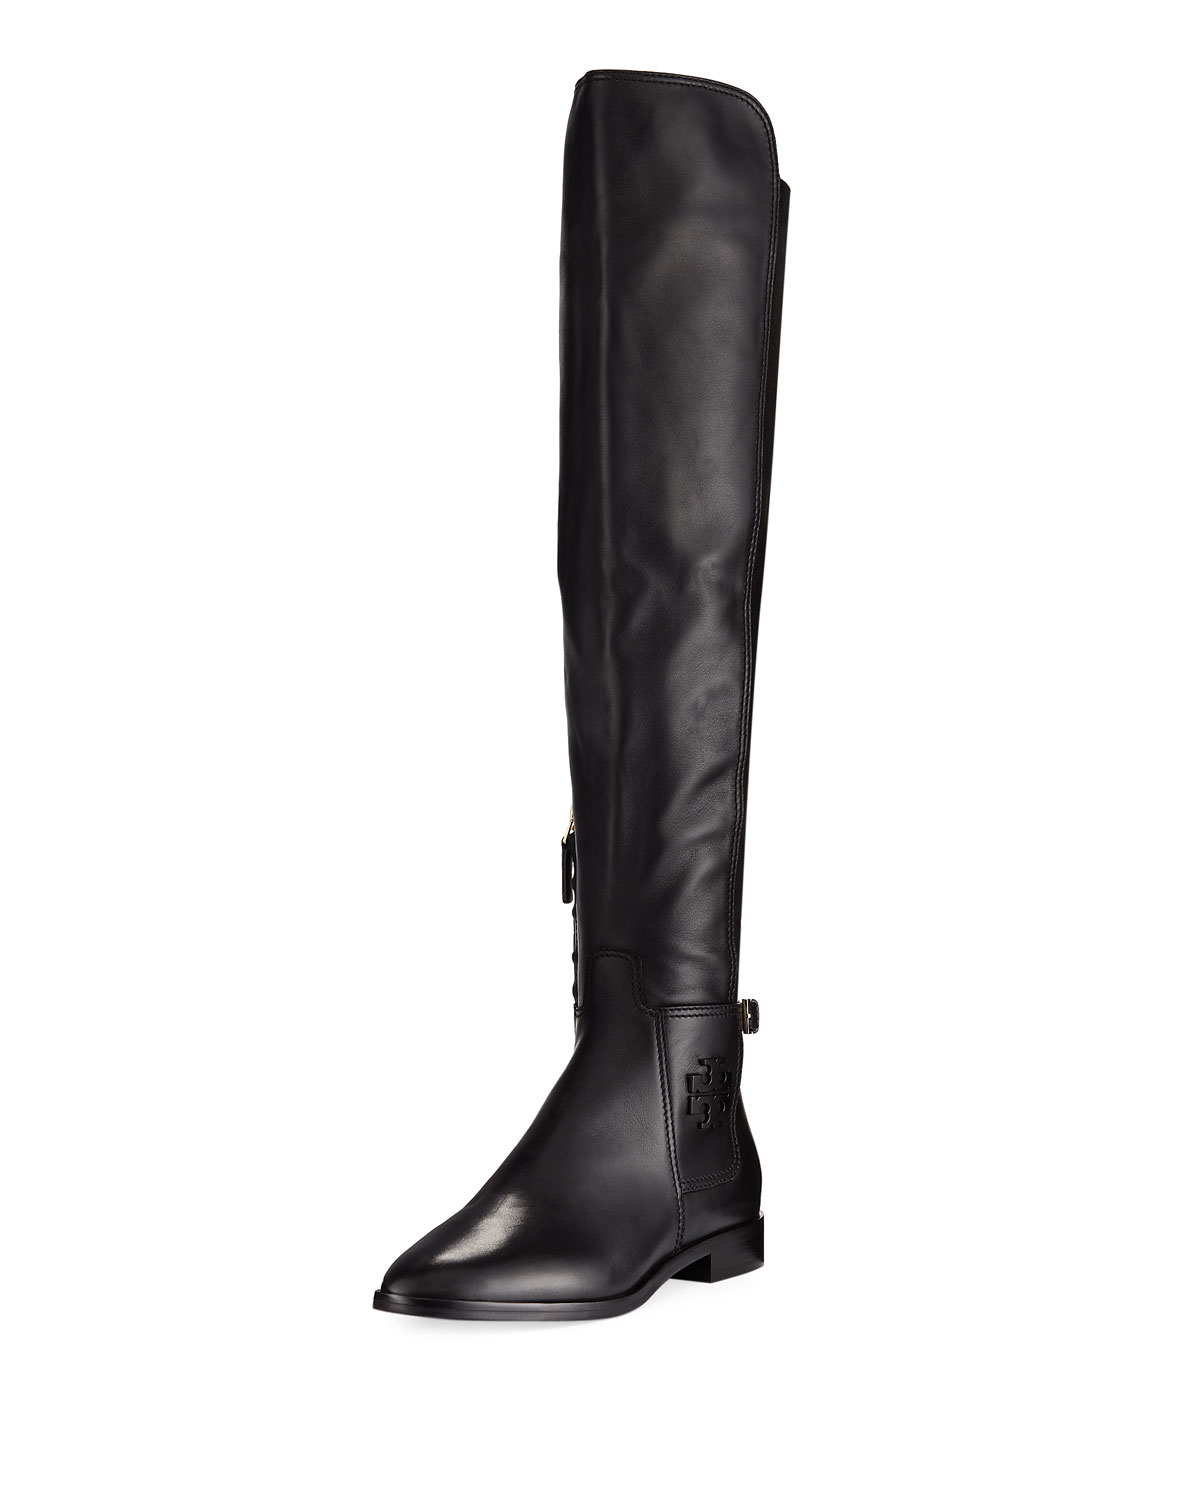 3b701d369 Tory Burch Wyatt Stretch Leather Over-The-Knee Boot